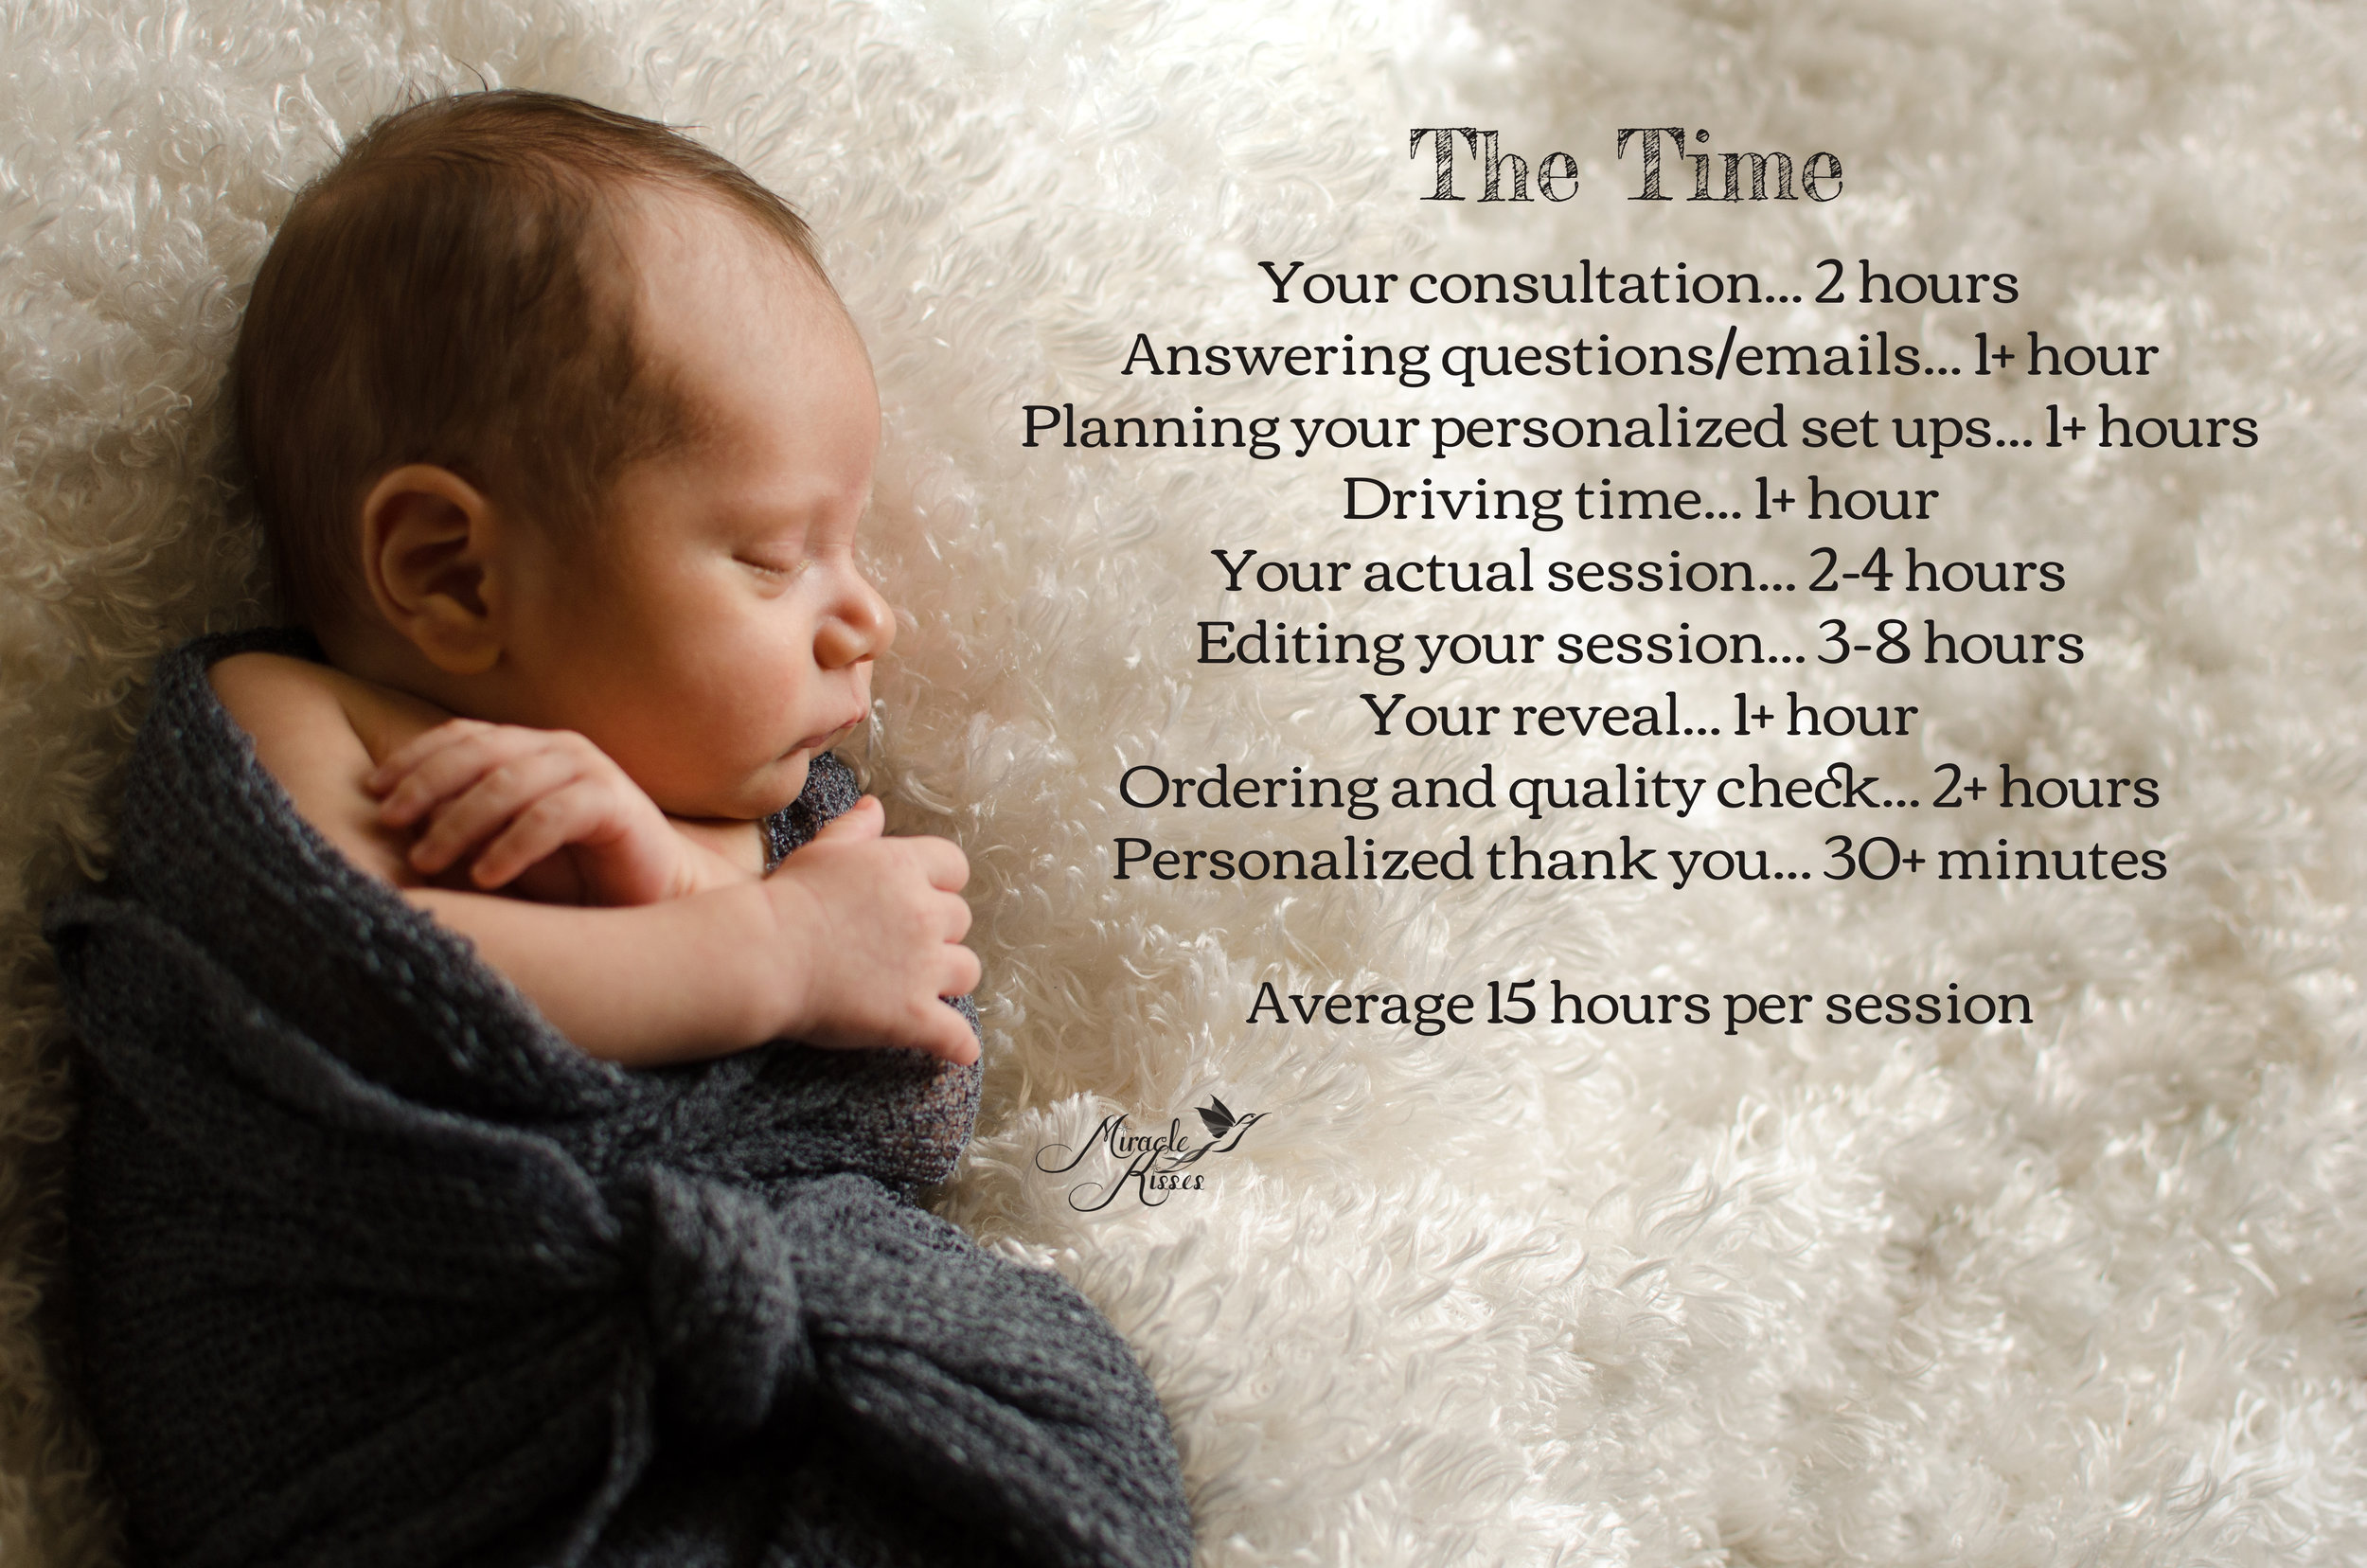 Time spent on a posed newborn photo session